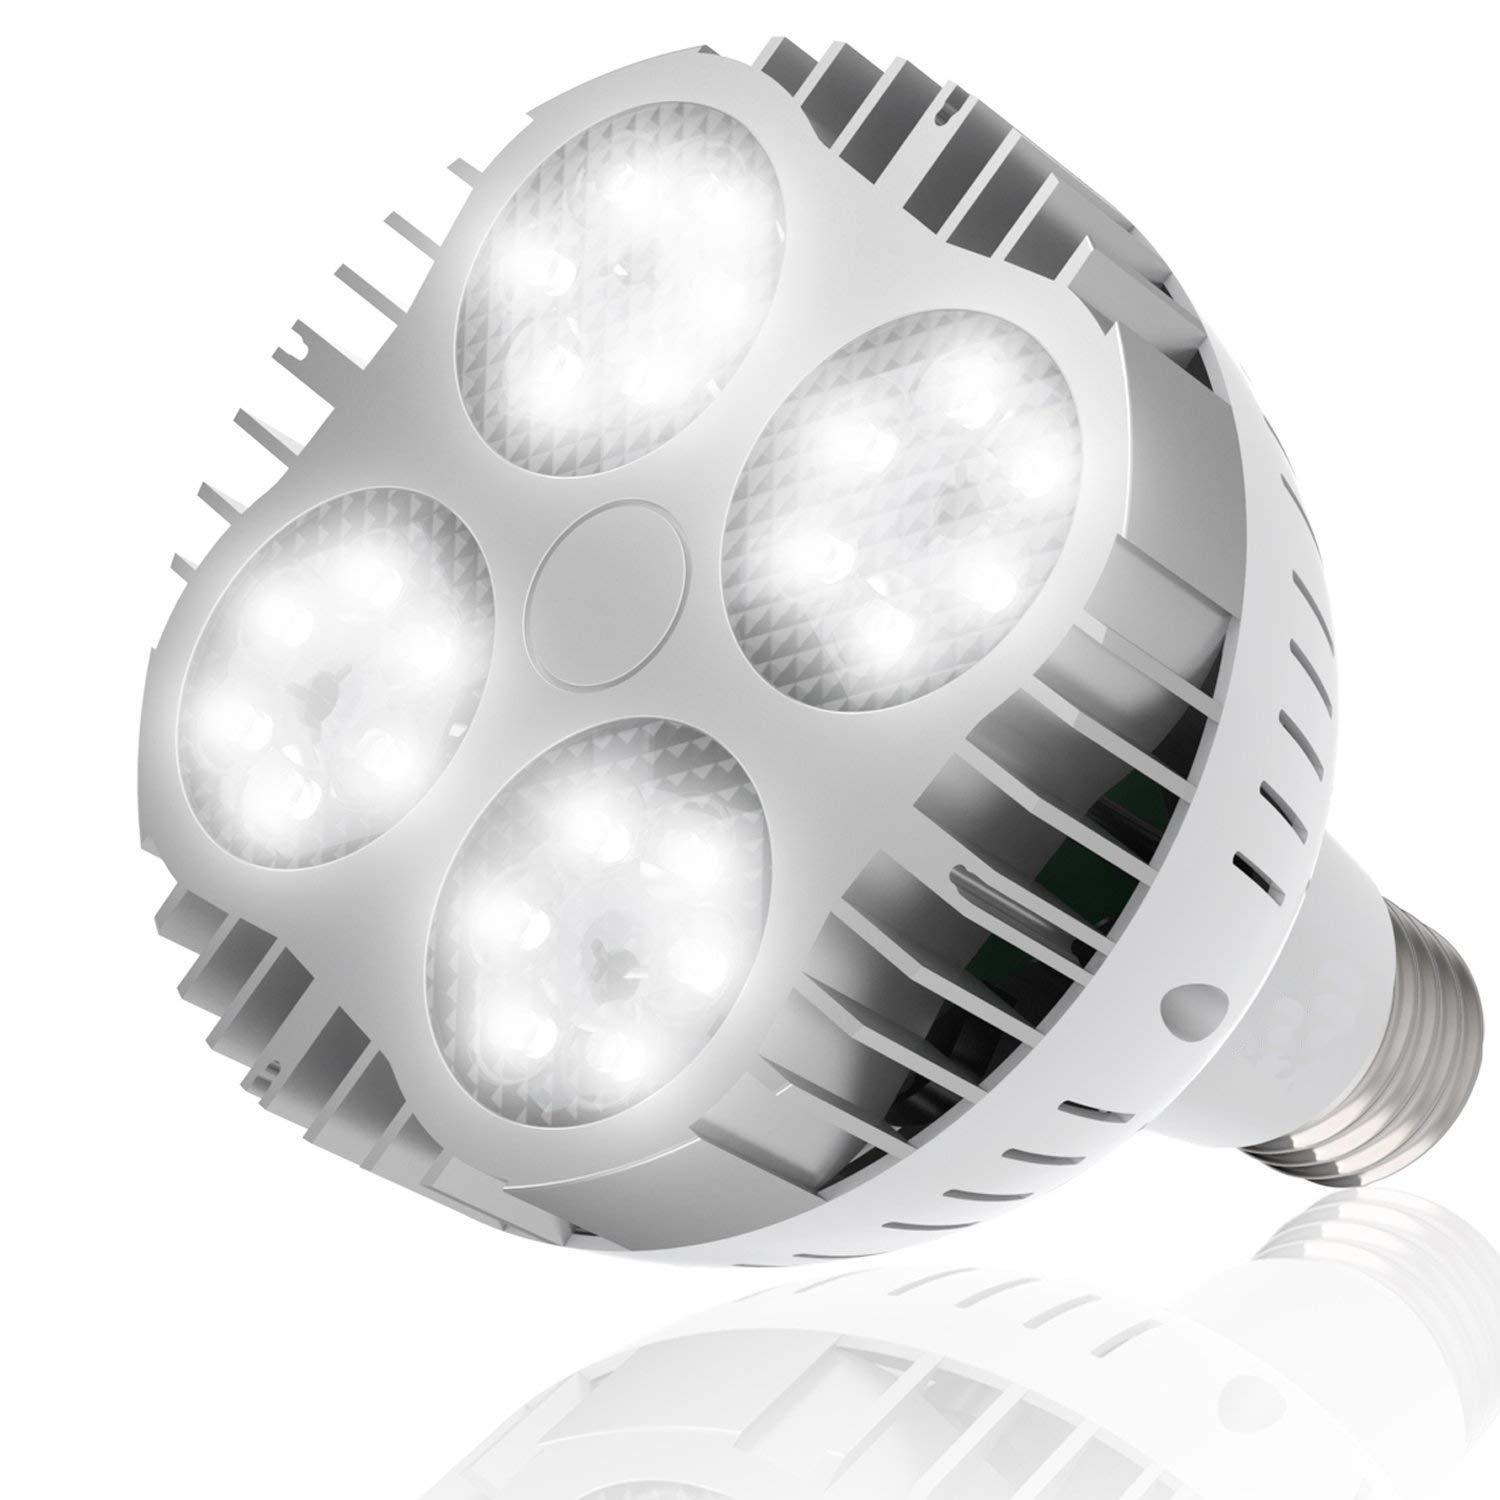 Yoursme Swimming Pool Led Light Bulb White 120V 45W 300-600w Traditional  Bulb Compatible for Most Hayward Light Fixture